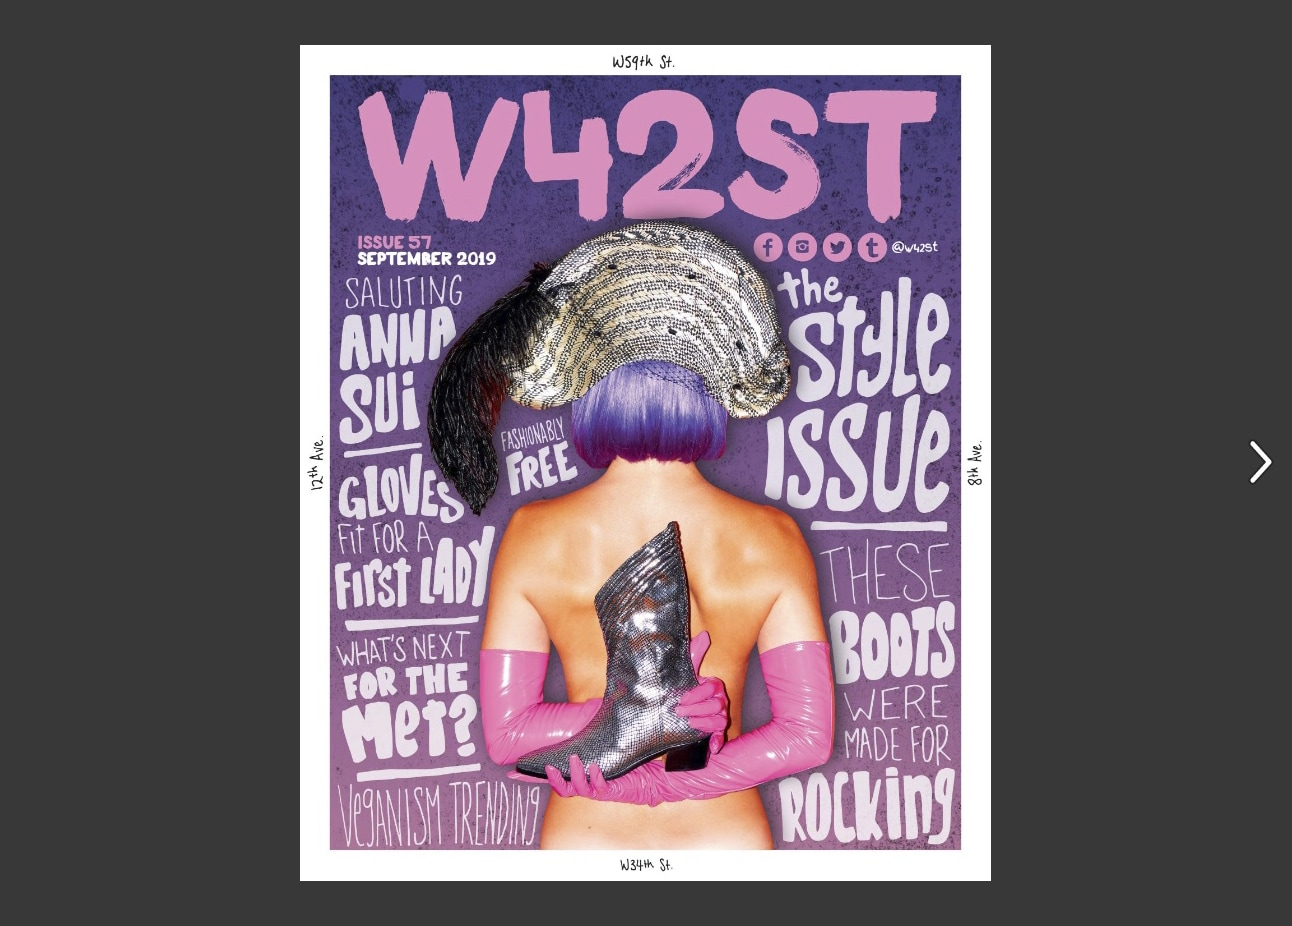 w42st-issue-57-the-style-issue-by-w42st-magazine-issuu-2019-09-26-07-11-00.jpg